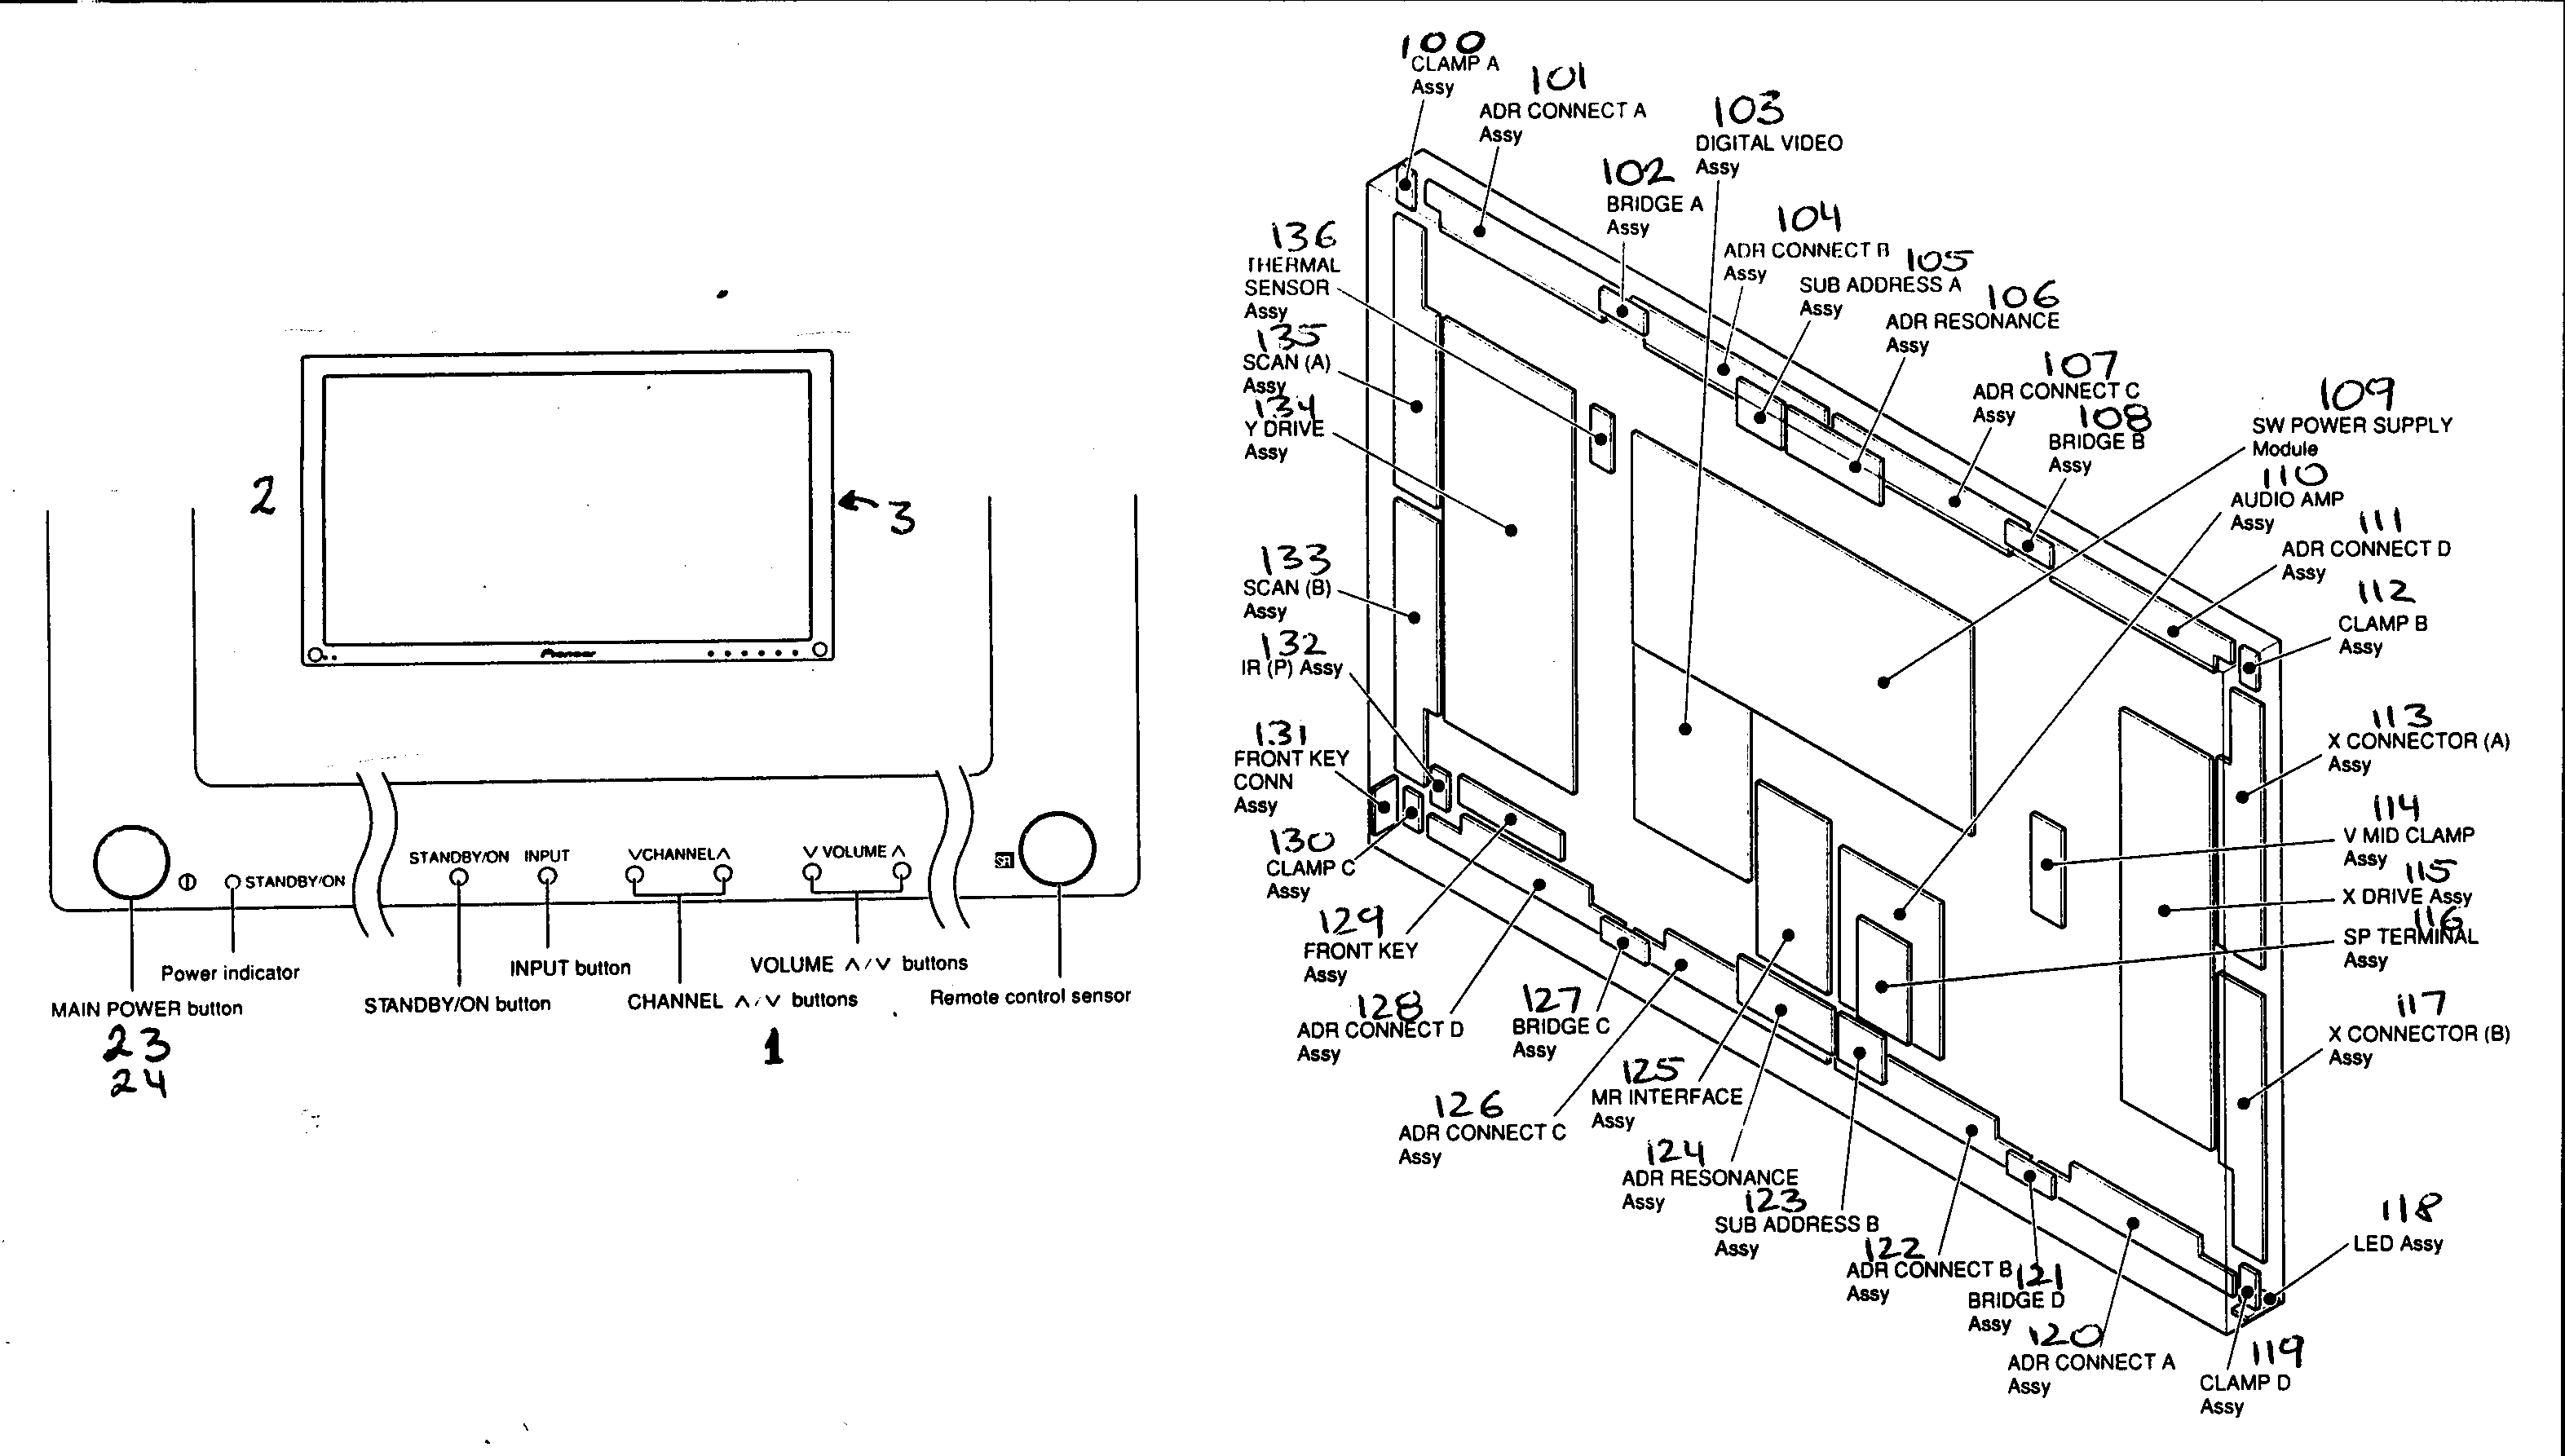 Pioneer PDP-503PU cabinet parts diagram